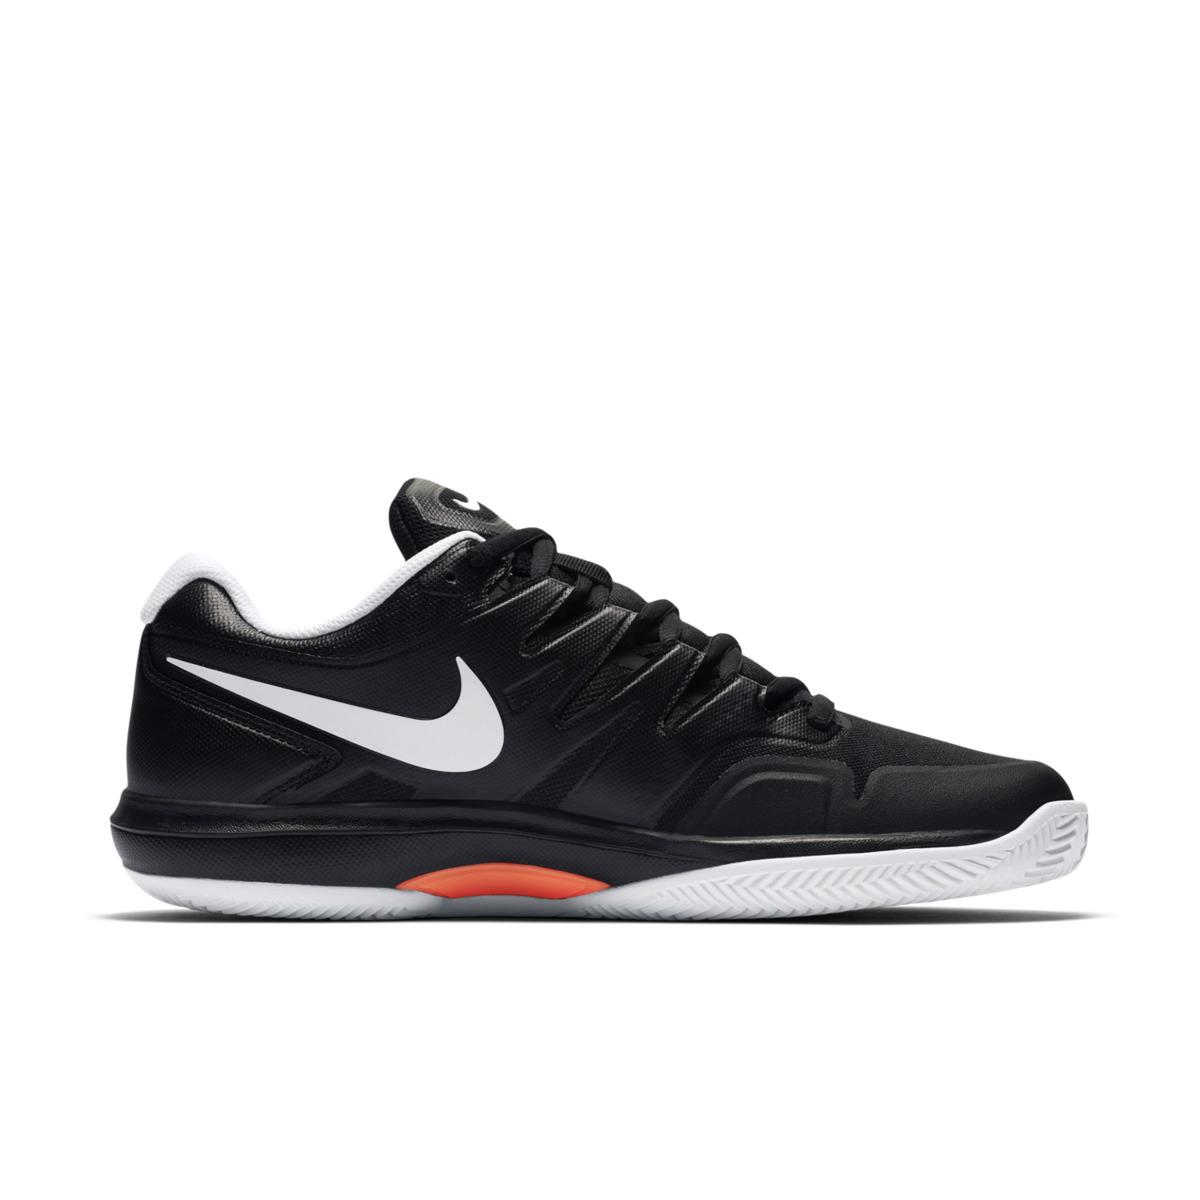 Lyst - Nike Air Zoom Prestige Cly Tennis padel Shoes in White for Men d9e175d7f5944